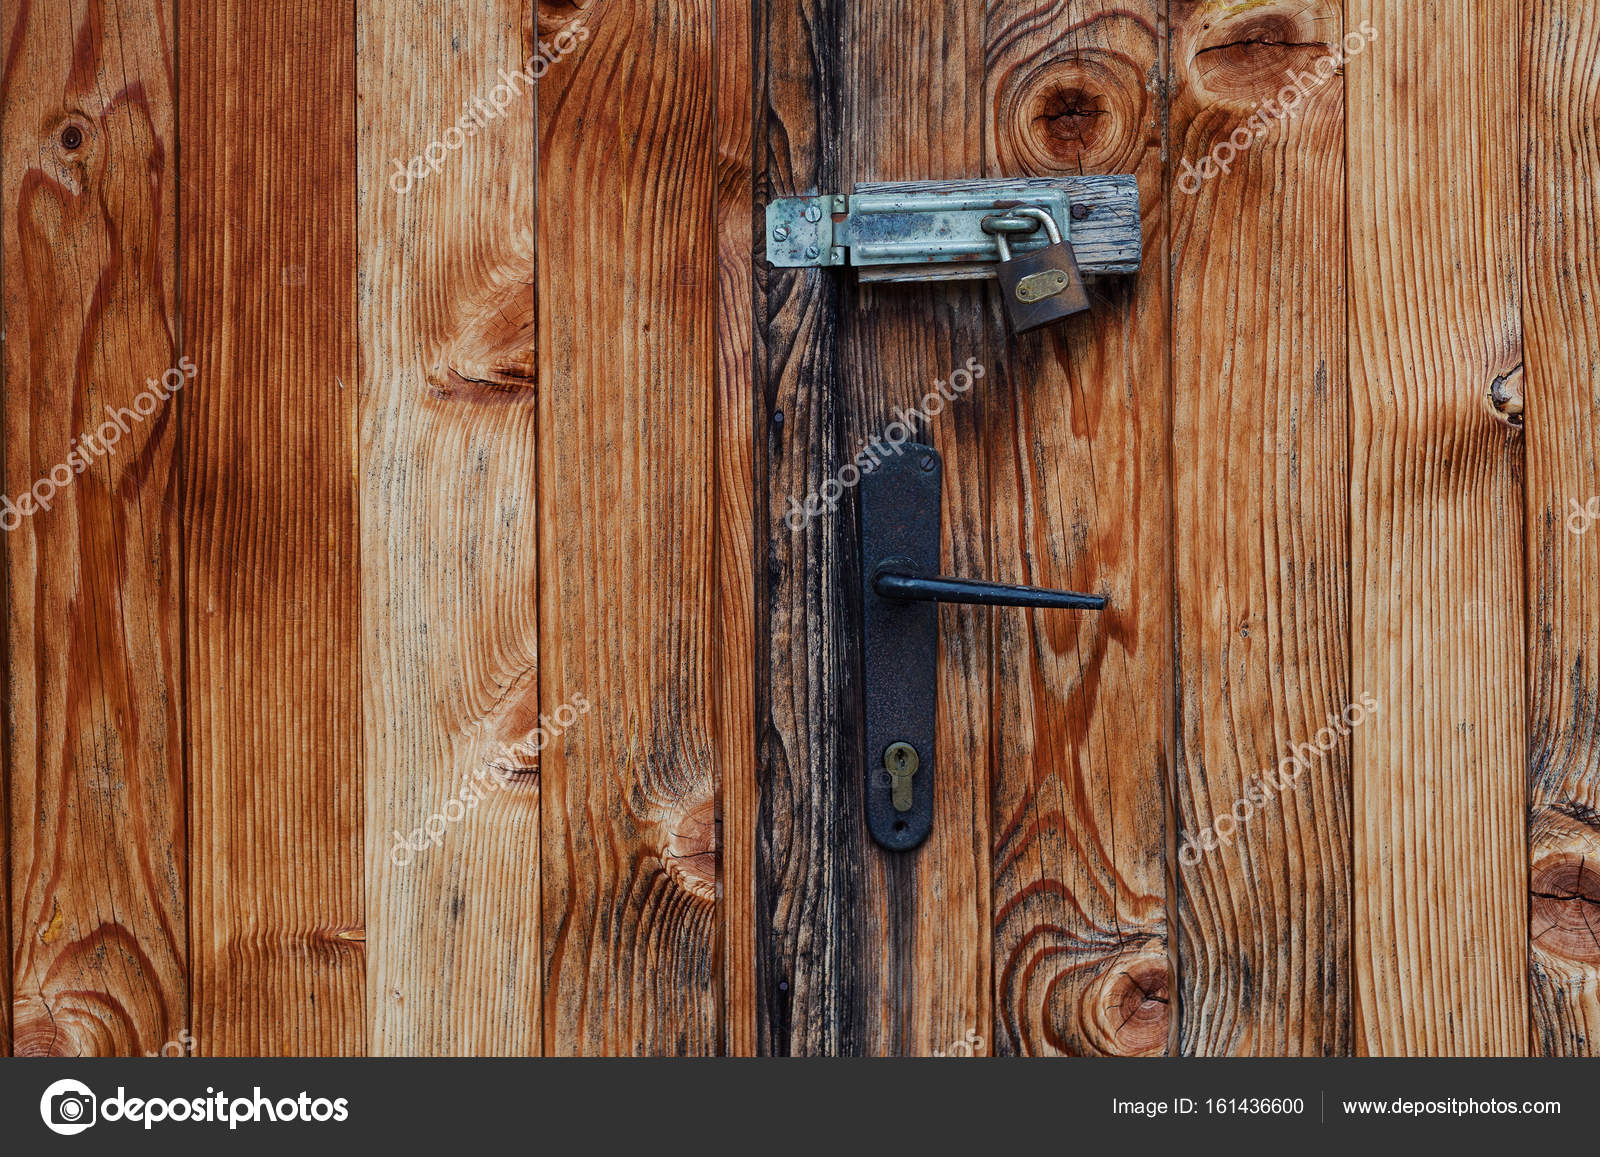 Details of an old weathered locked door abstract composition. u2014 Photo by krsmanovic & Old Weathered Locked Door u2014 Stock Photo © krsmanovic #161436600